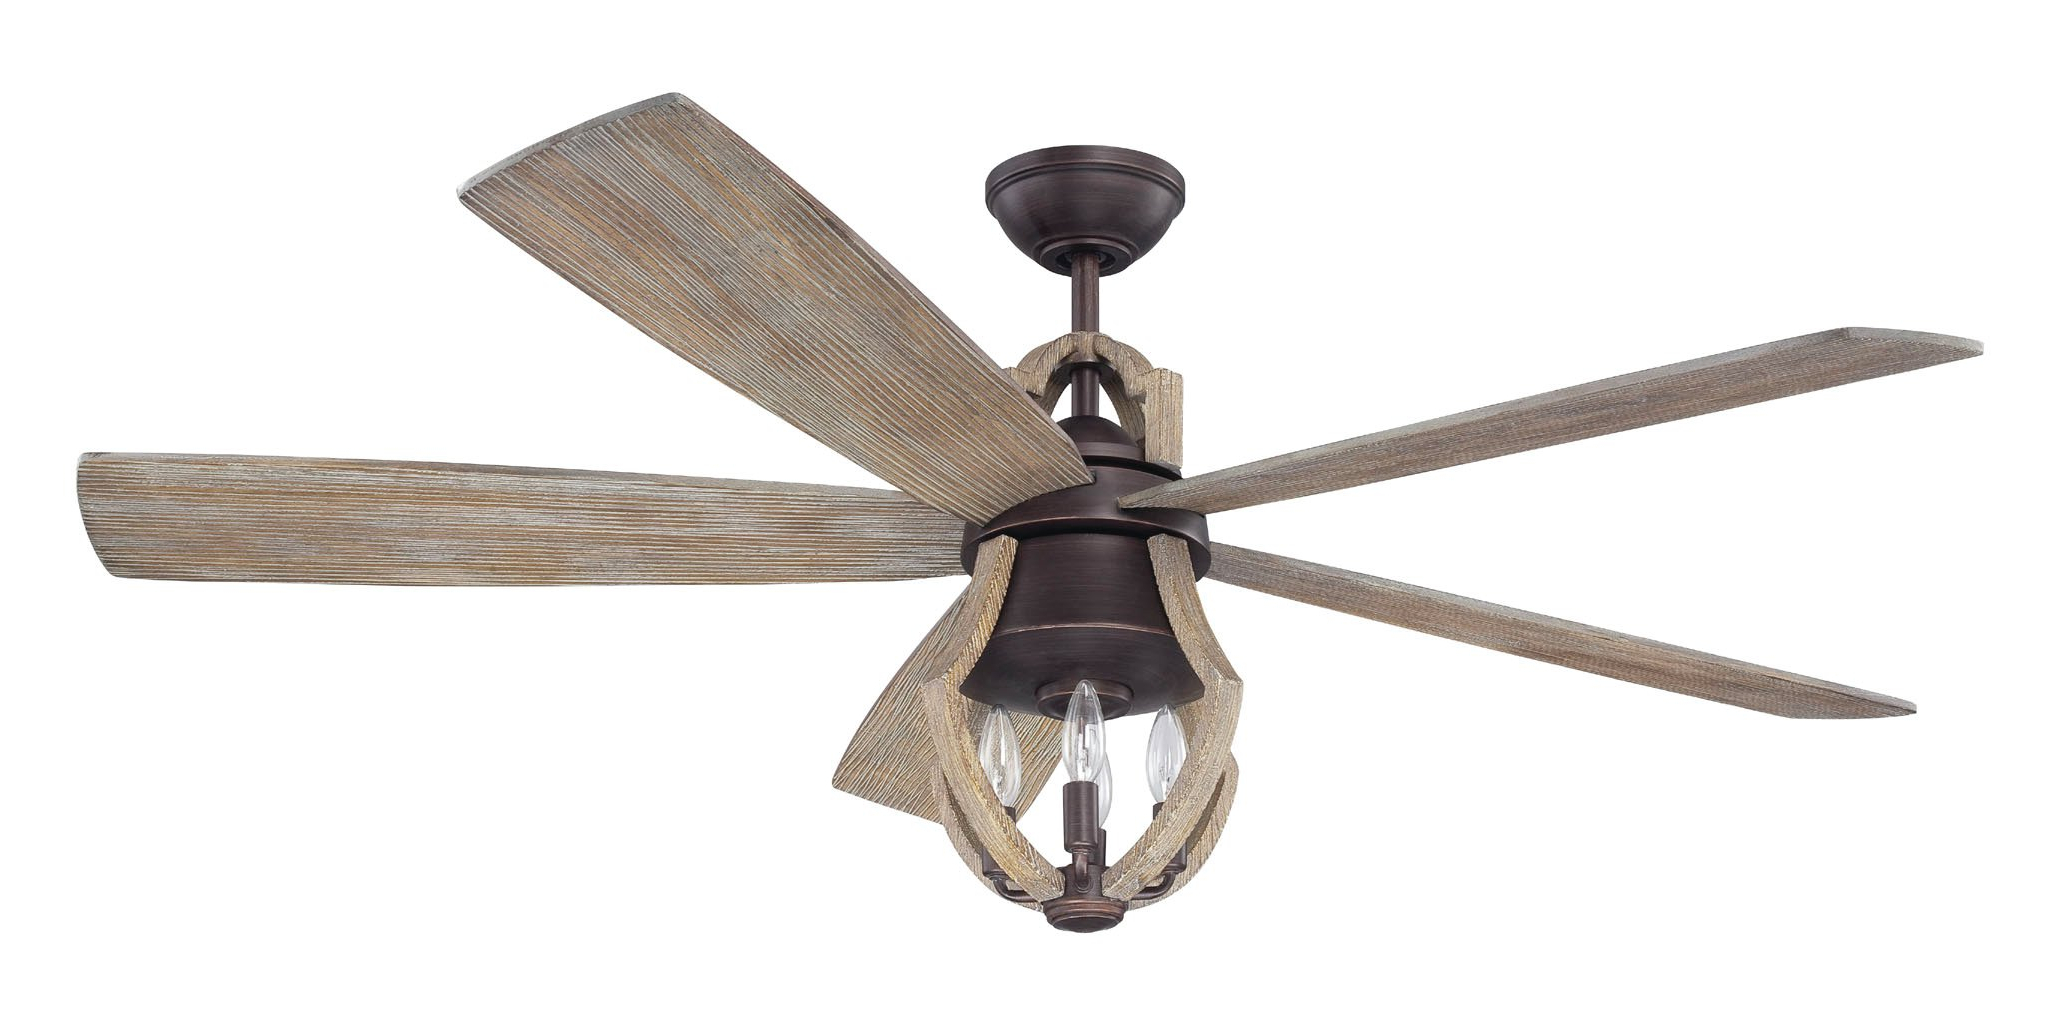 Wayfair Intended For 2019 Fredericksen 5 Blade Ceiling Fans (View 19 of 20)